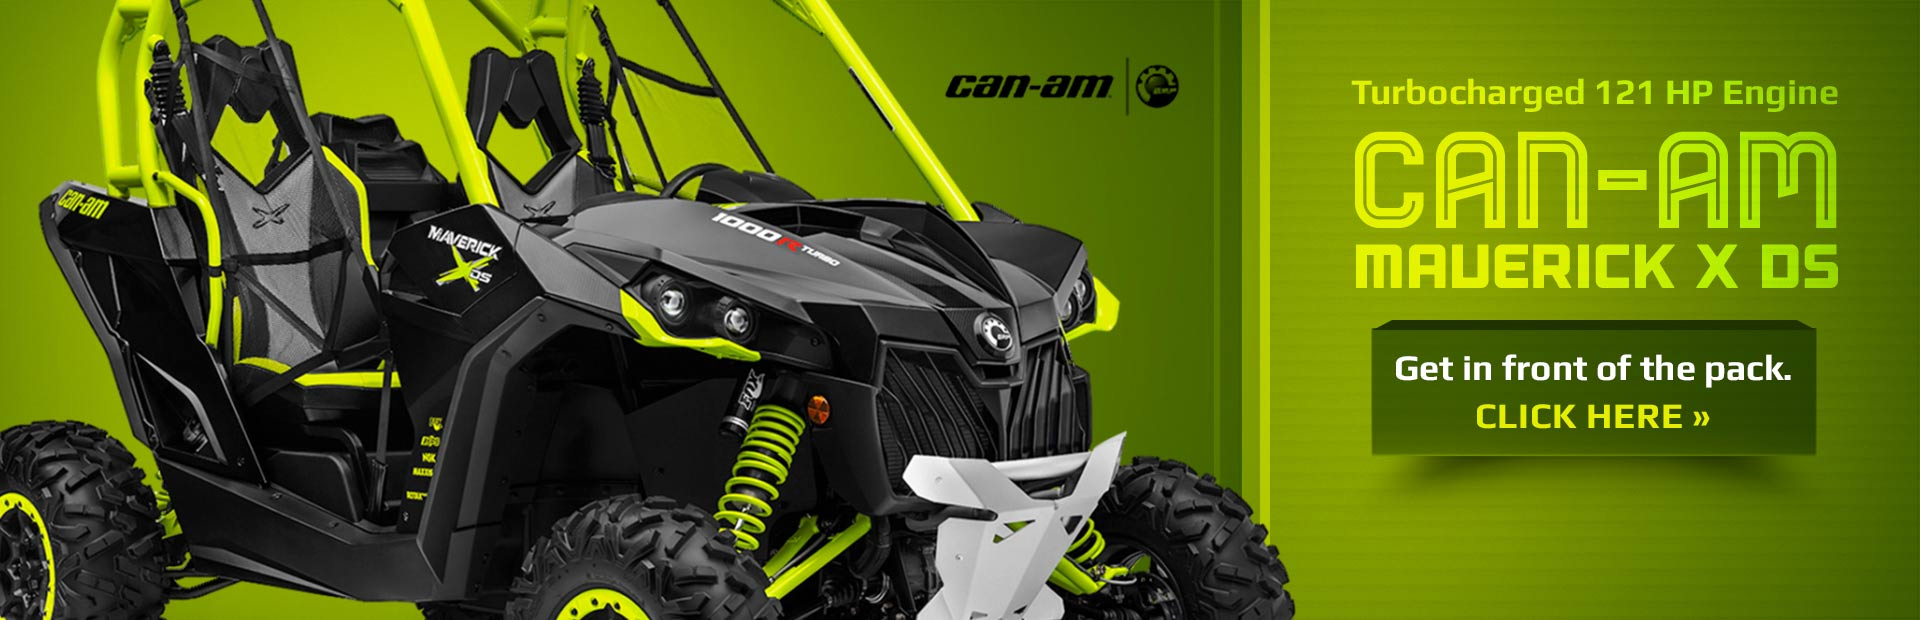 2015 Can-Am Maverick X ds: Click here to view the model.